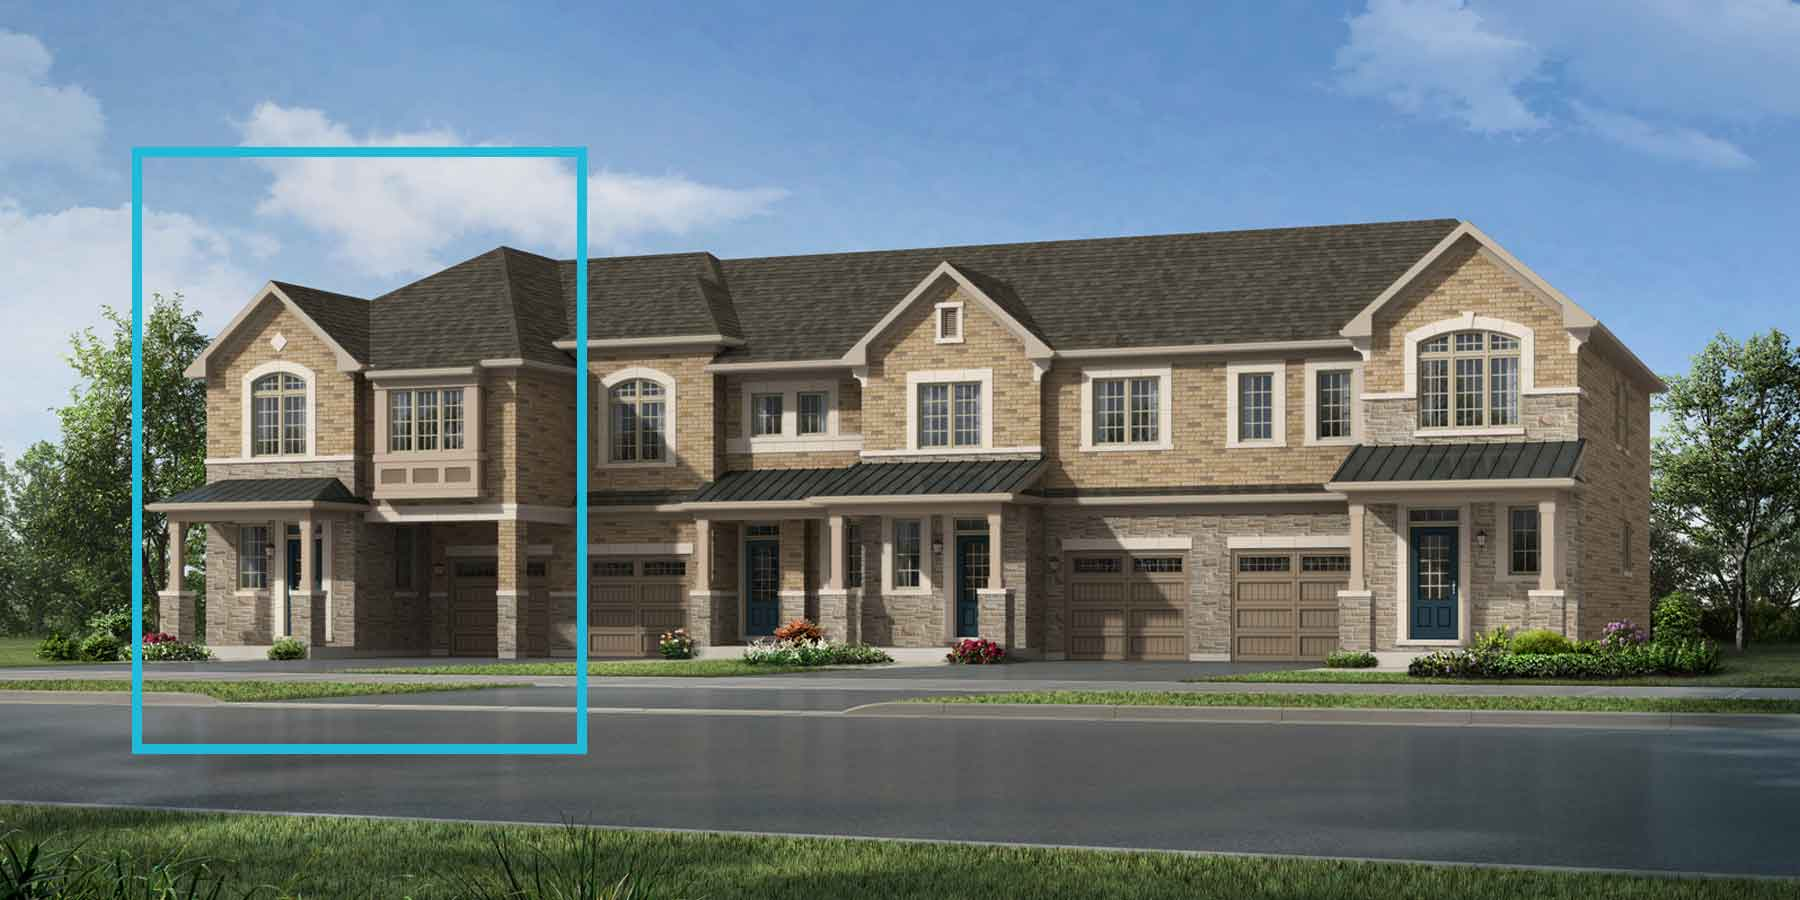 Greenfield Plan TownHomes at Seaton Whitevale in Pickering Ontario by Mattamy Homes